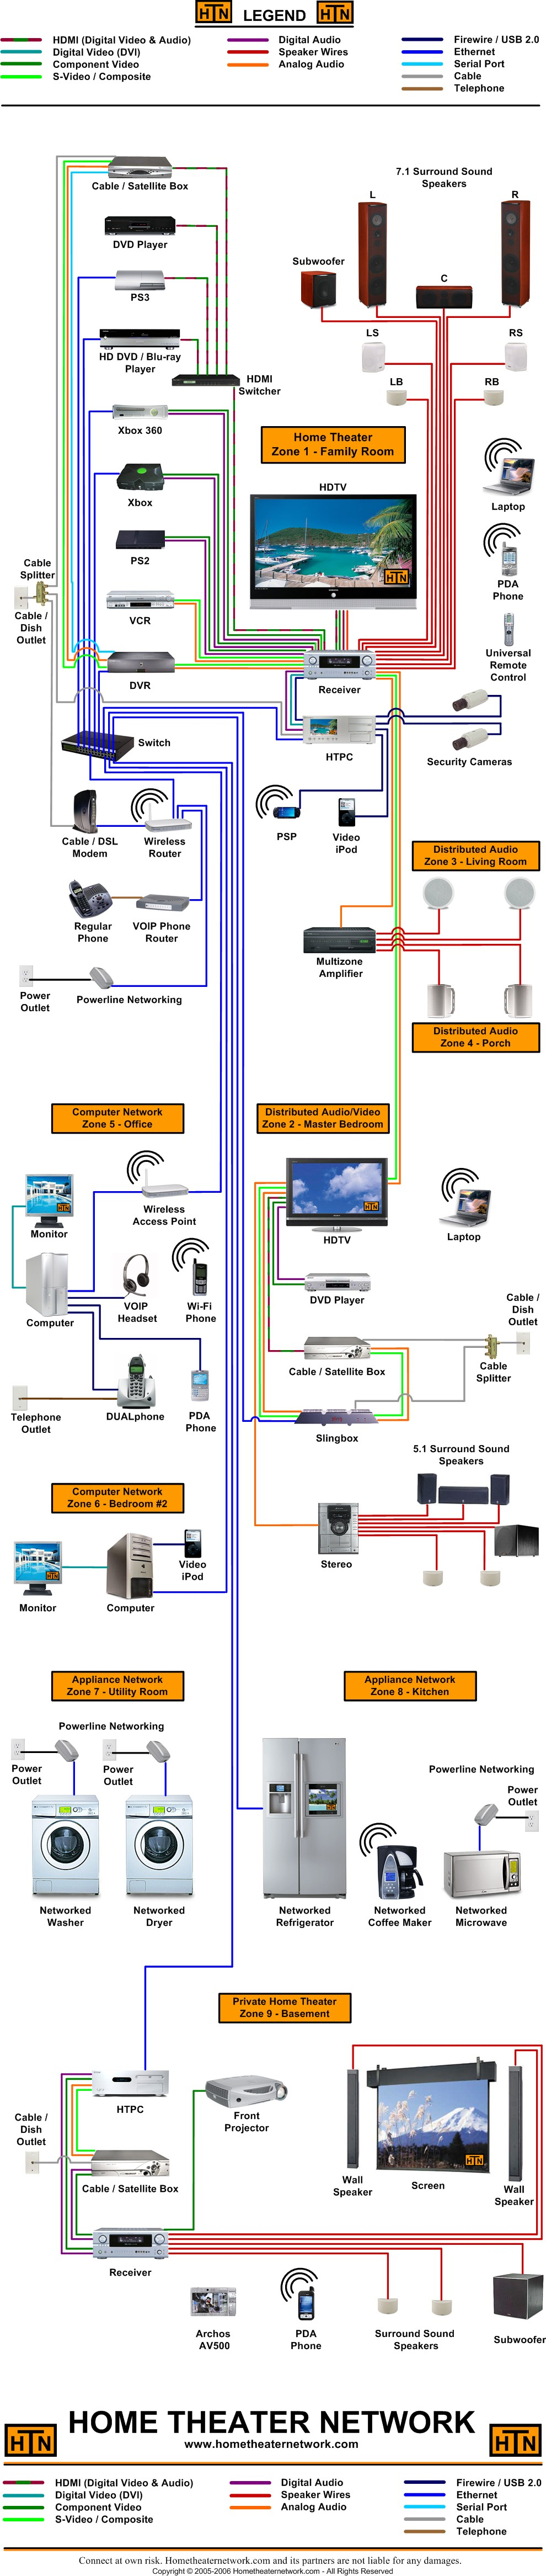 Home Theater Network S Large Block Diagram Home Automation System Home Theater Home Automation